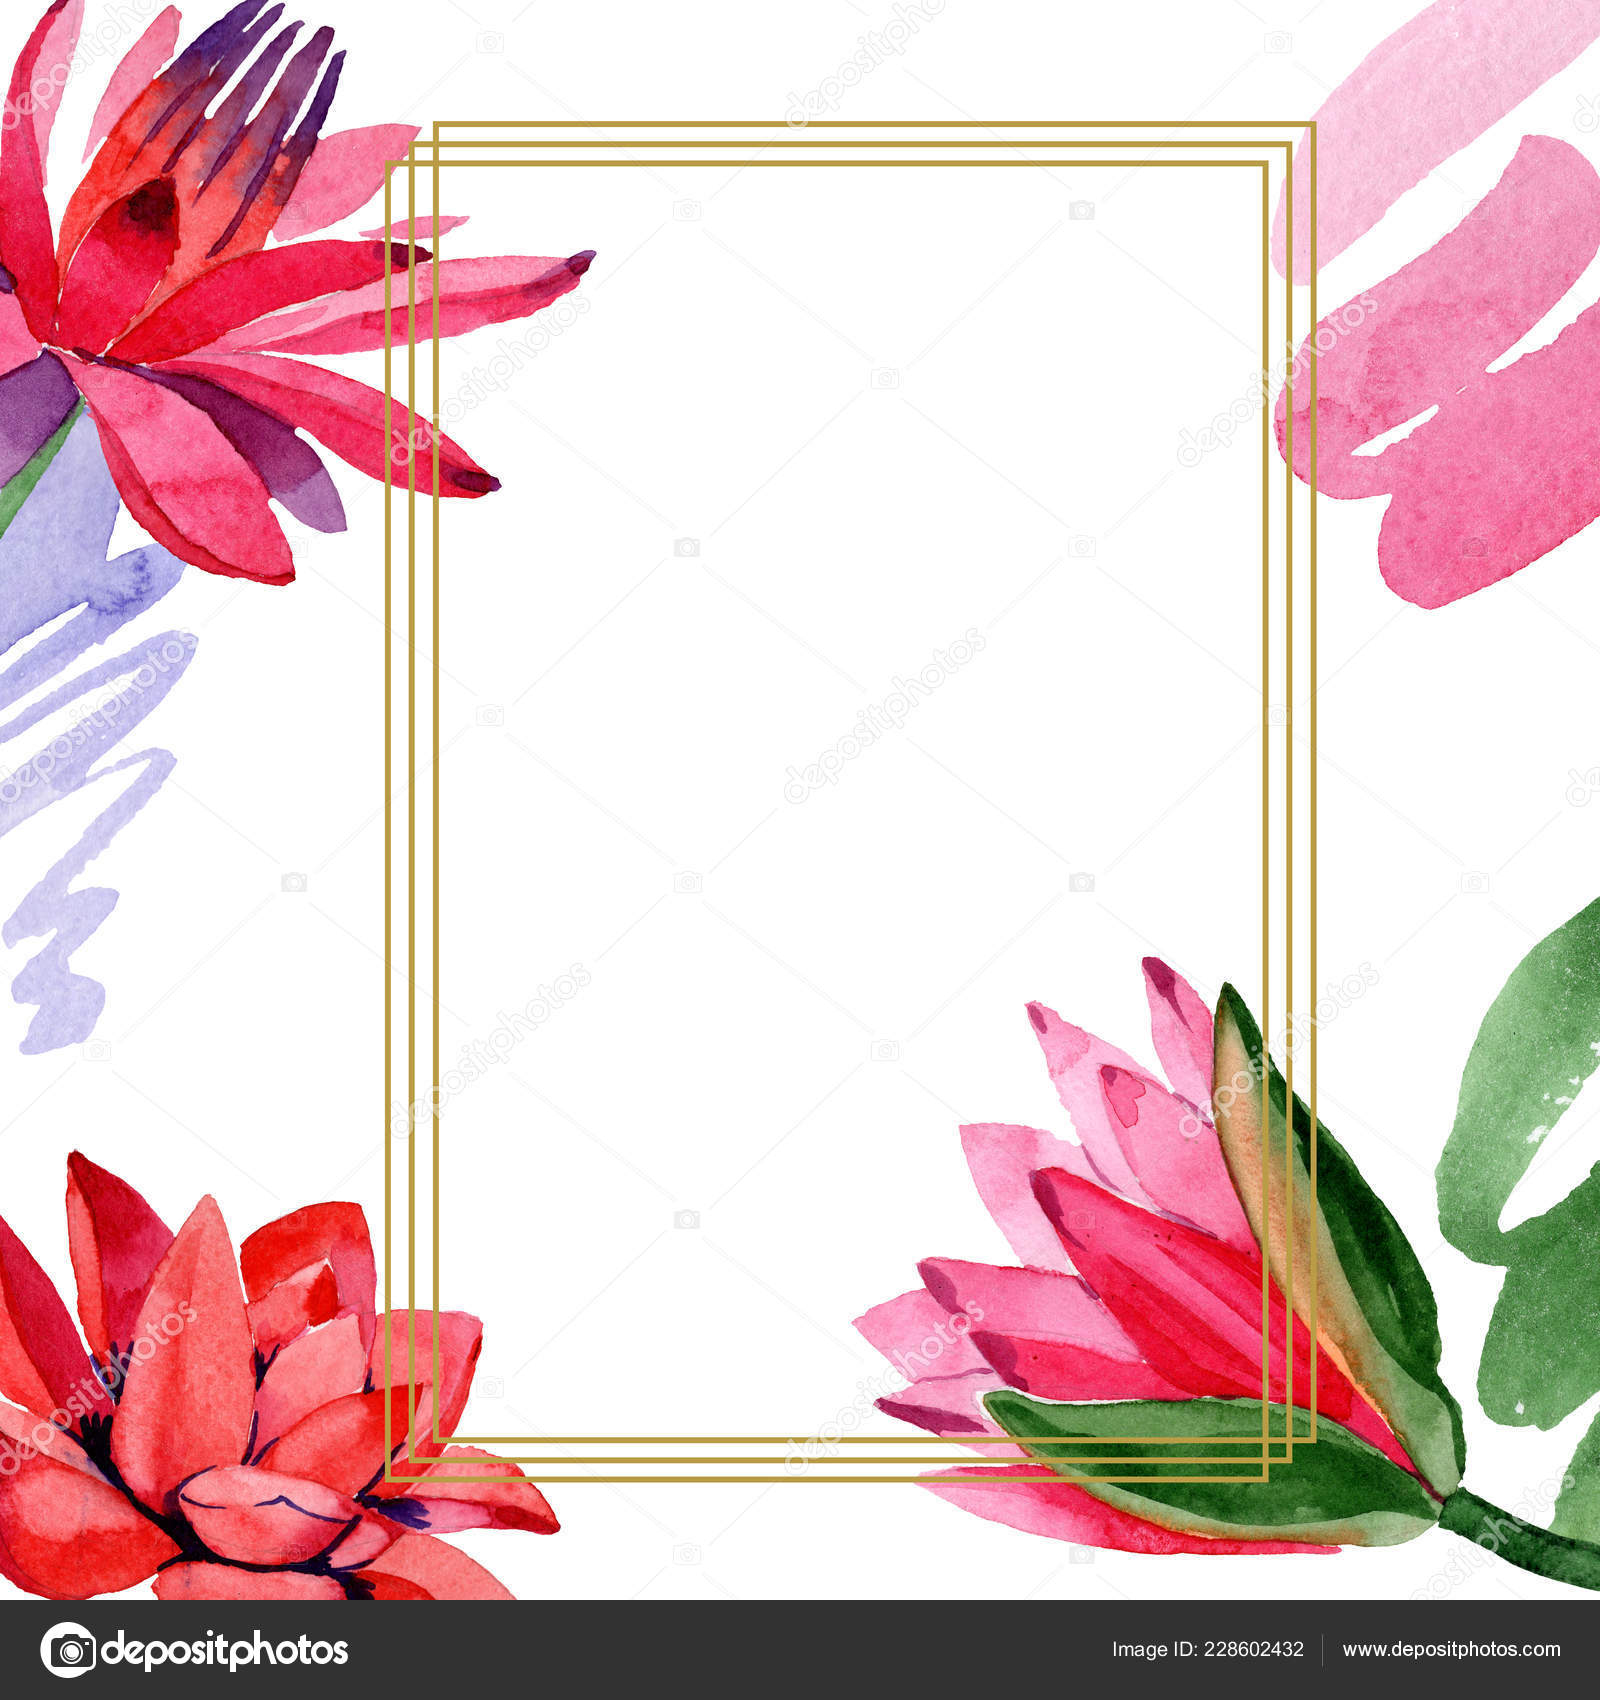 Red Lotus Flowers Watercolor Background Illustration Frame Border